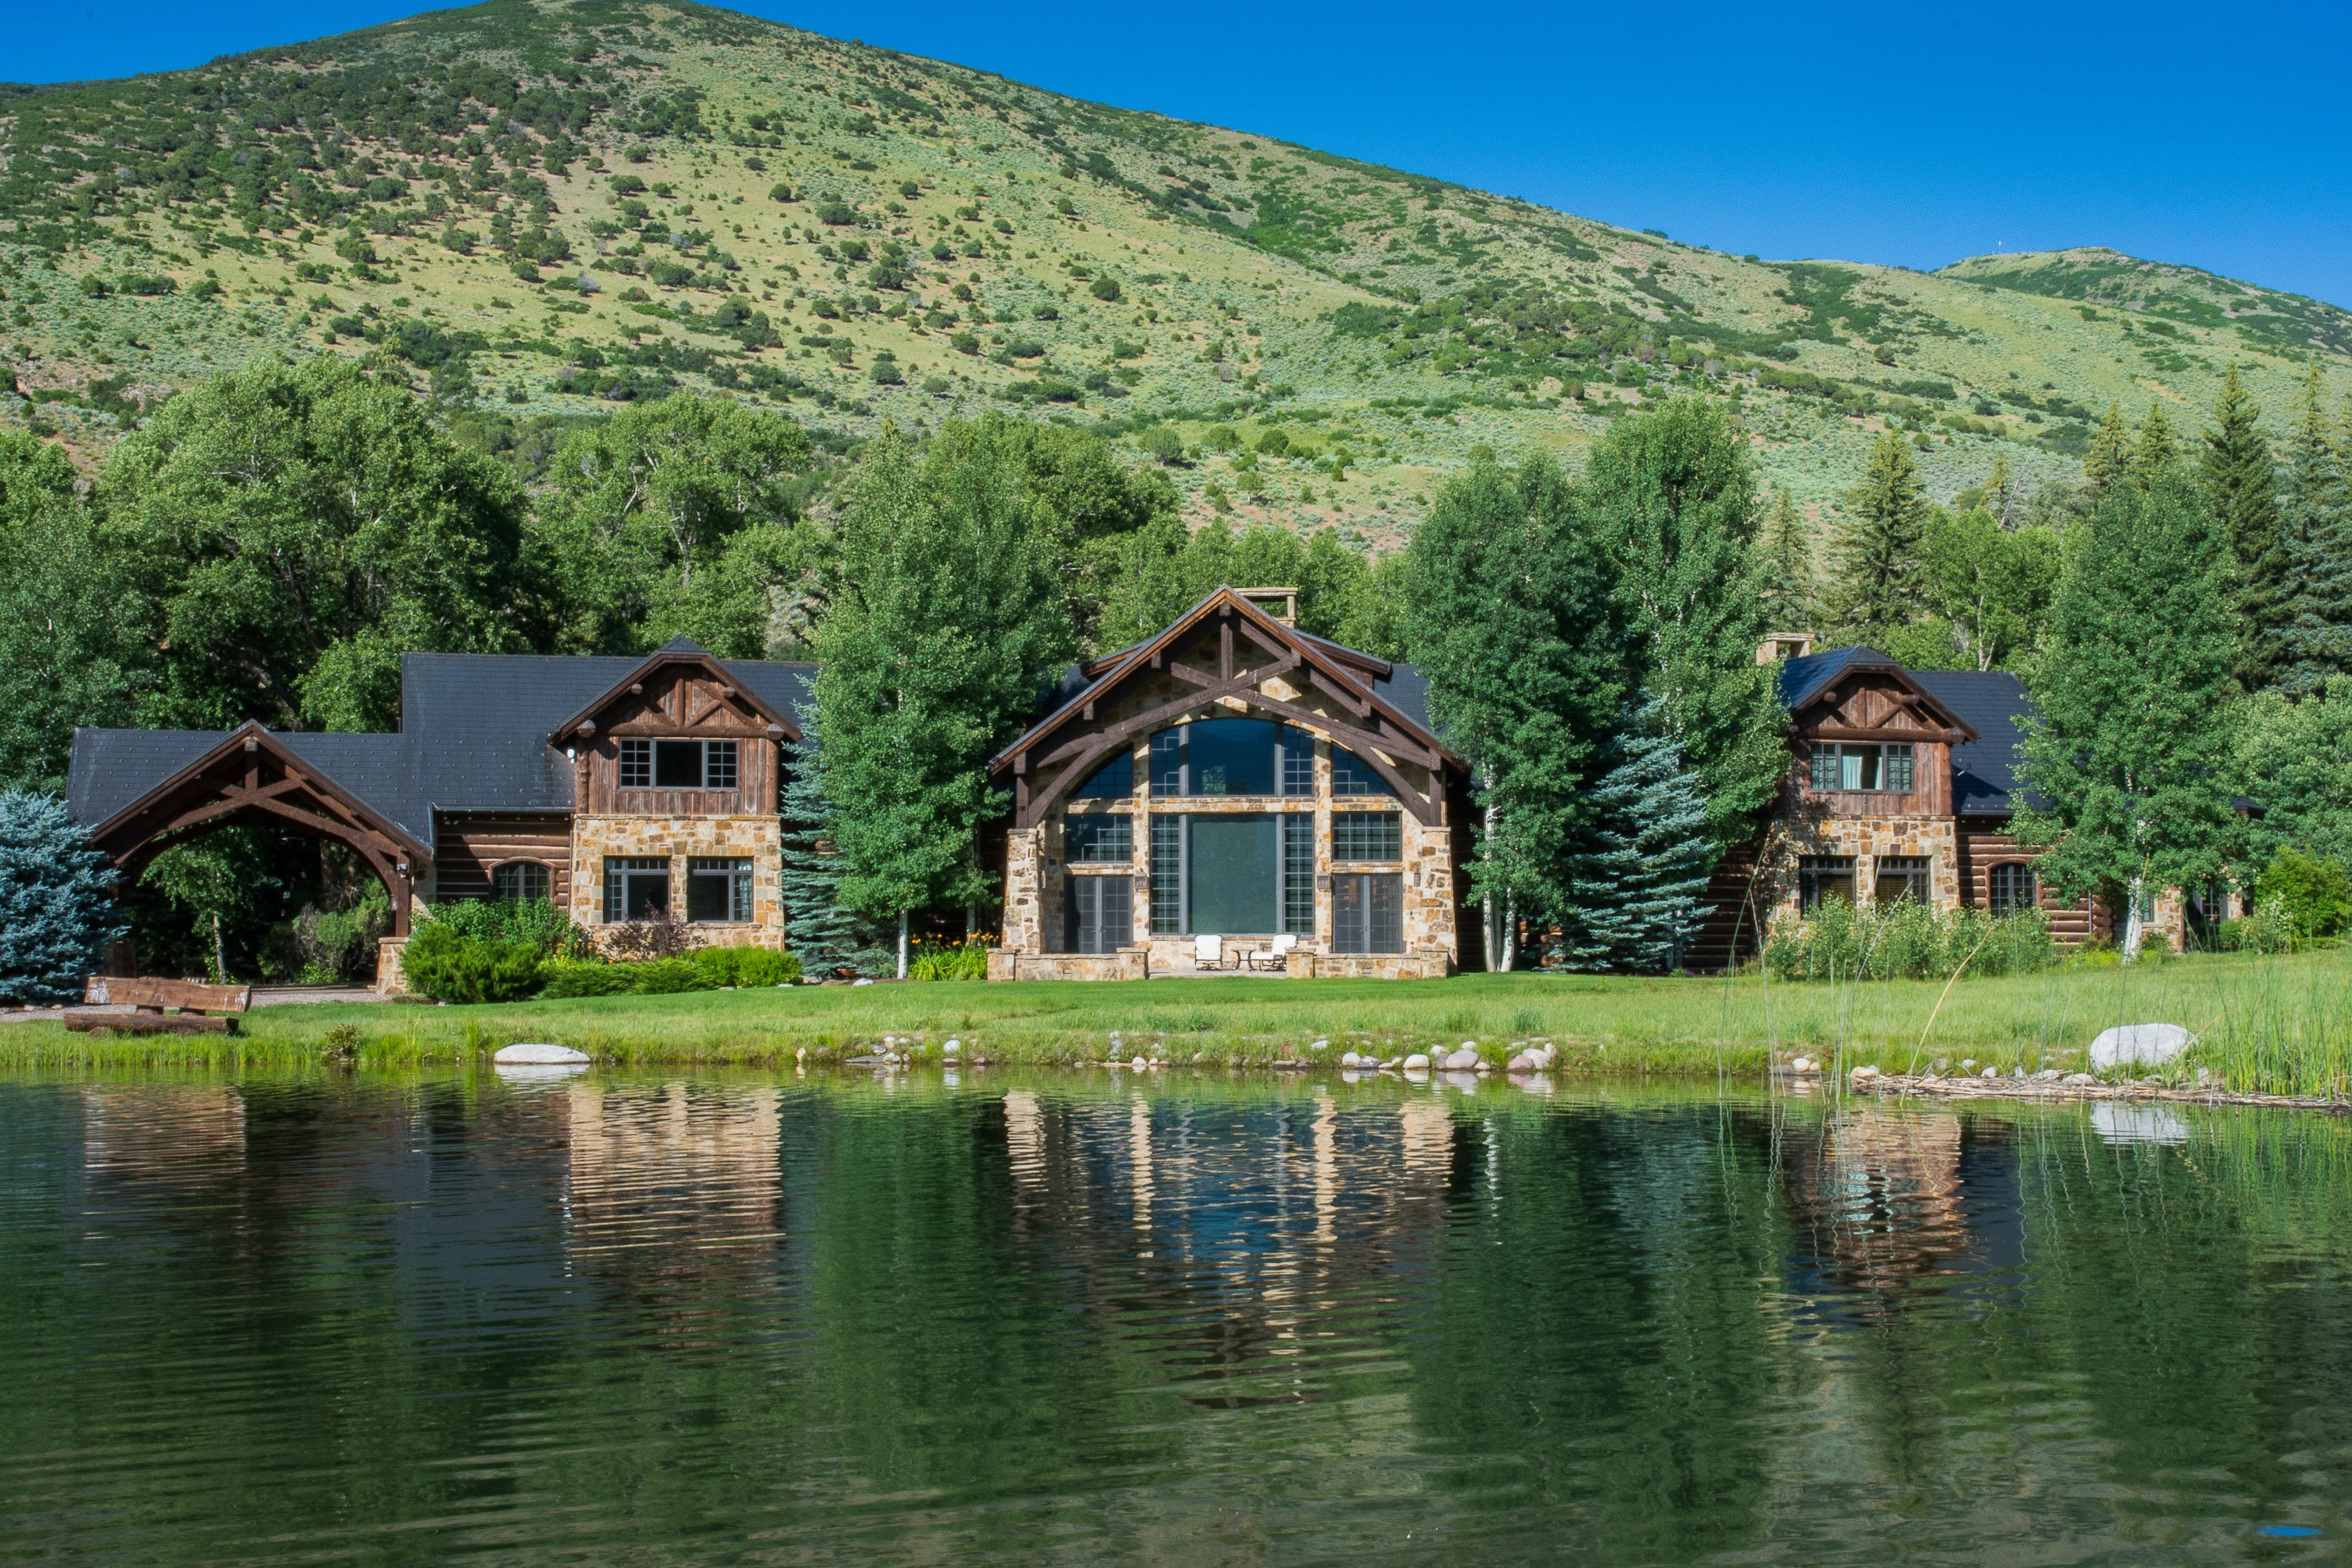 Fattoria / ranch / campagna per Vendita alle ore Spectacular Ranch on Snowmass Creek 2280/2288 Snowmass Creek Road Aspen, Colorado, 81611 Stati Uniti